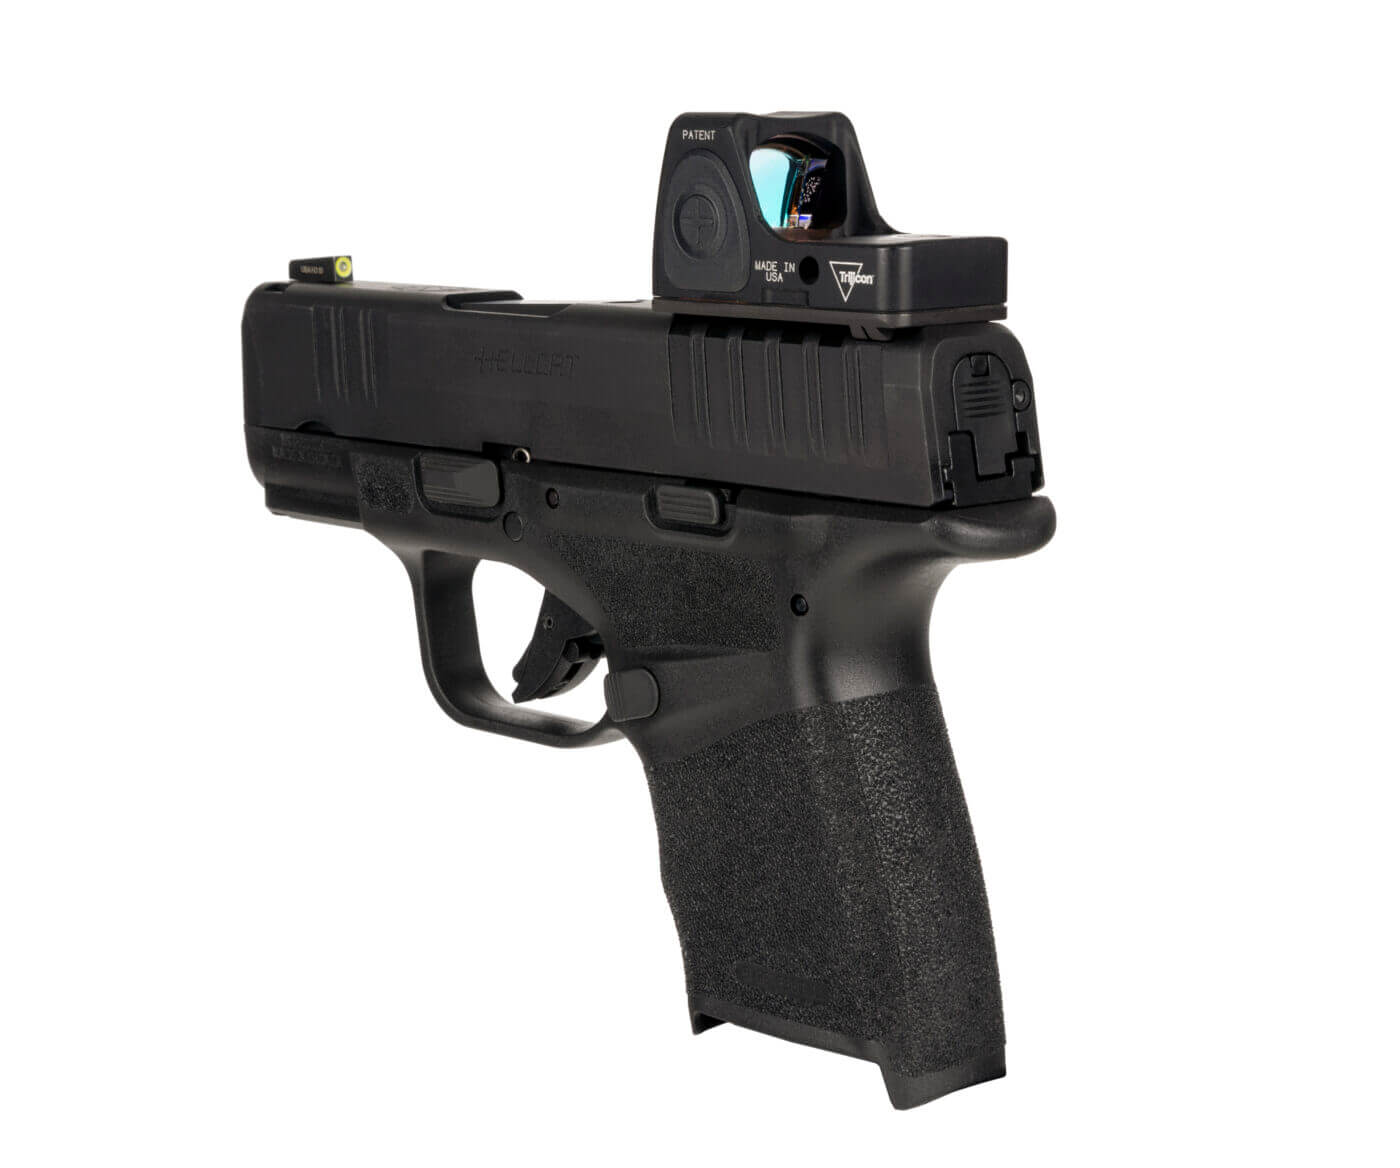 Trijicon's new red dot fits on the Hellcat with an adaptor mount